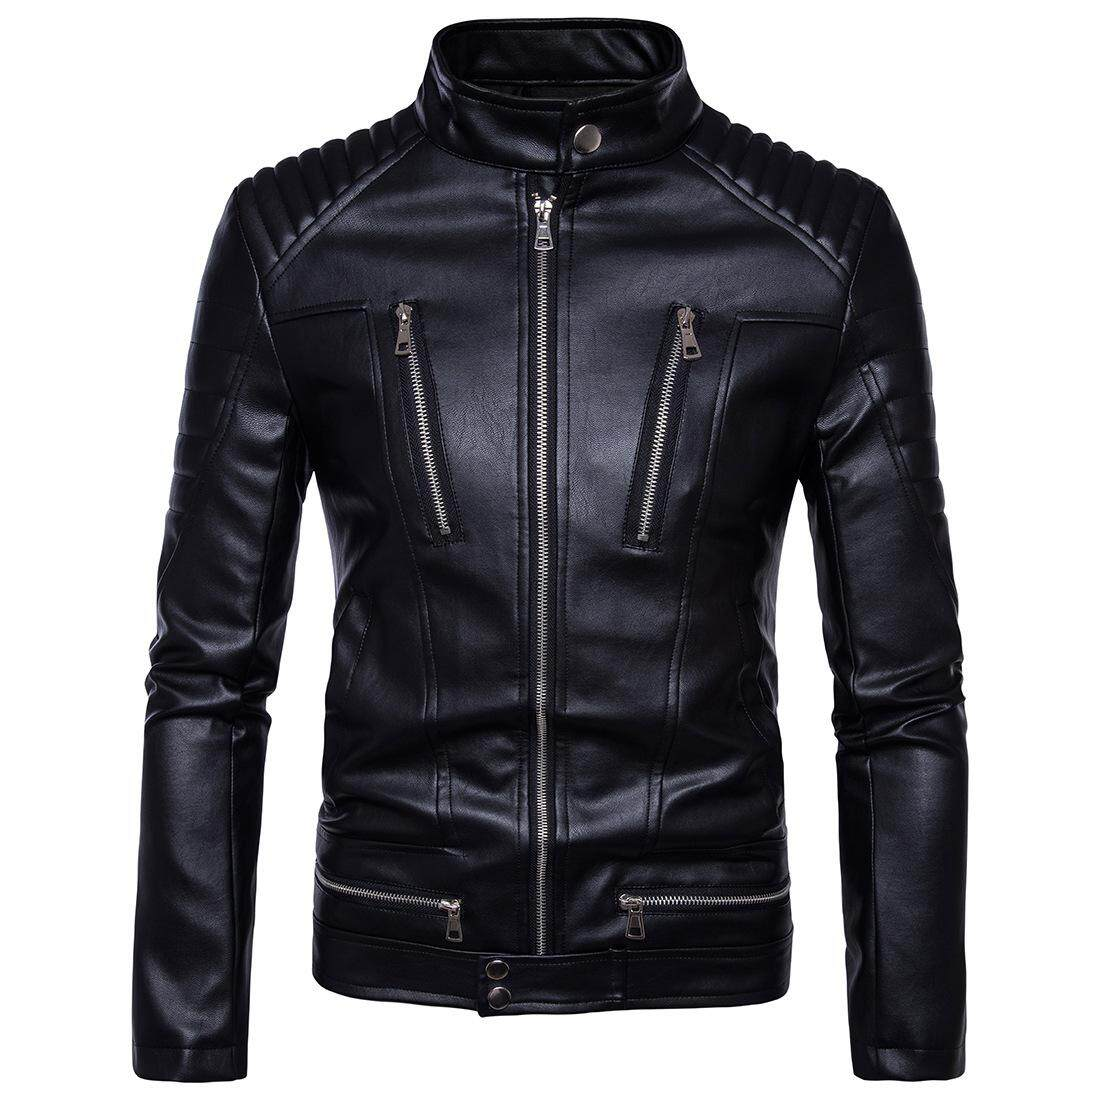 European Code Boutique Punk Men's Motorcycle Multi Zipper Fur Leather Jacket Jacket